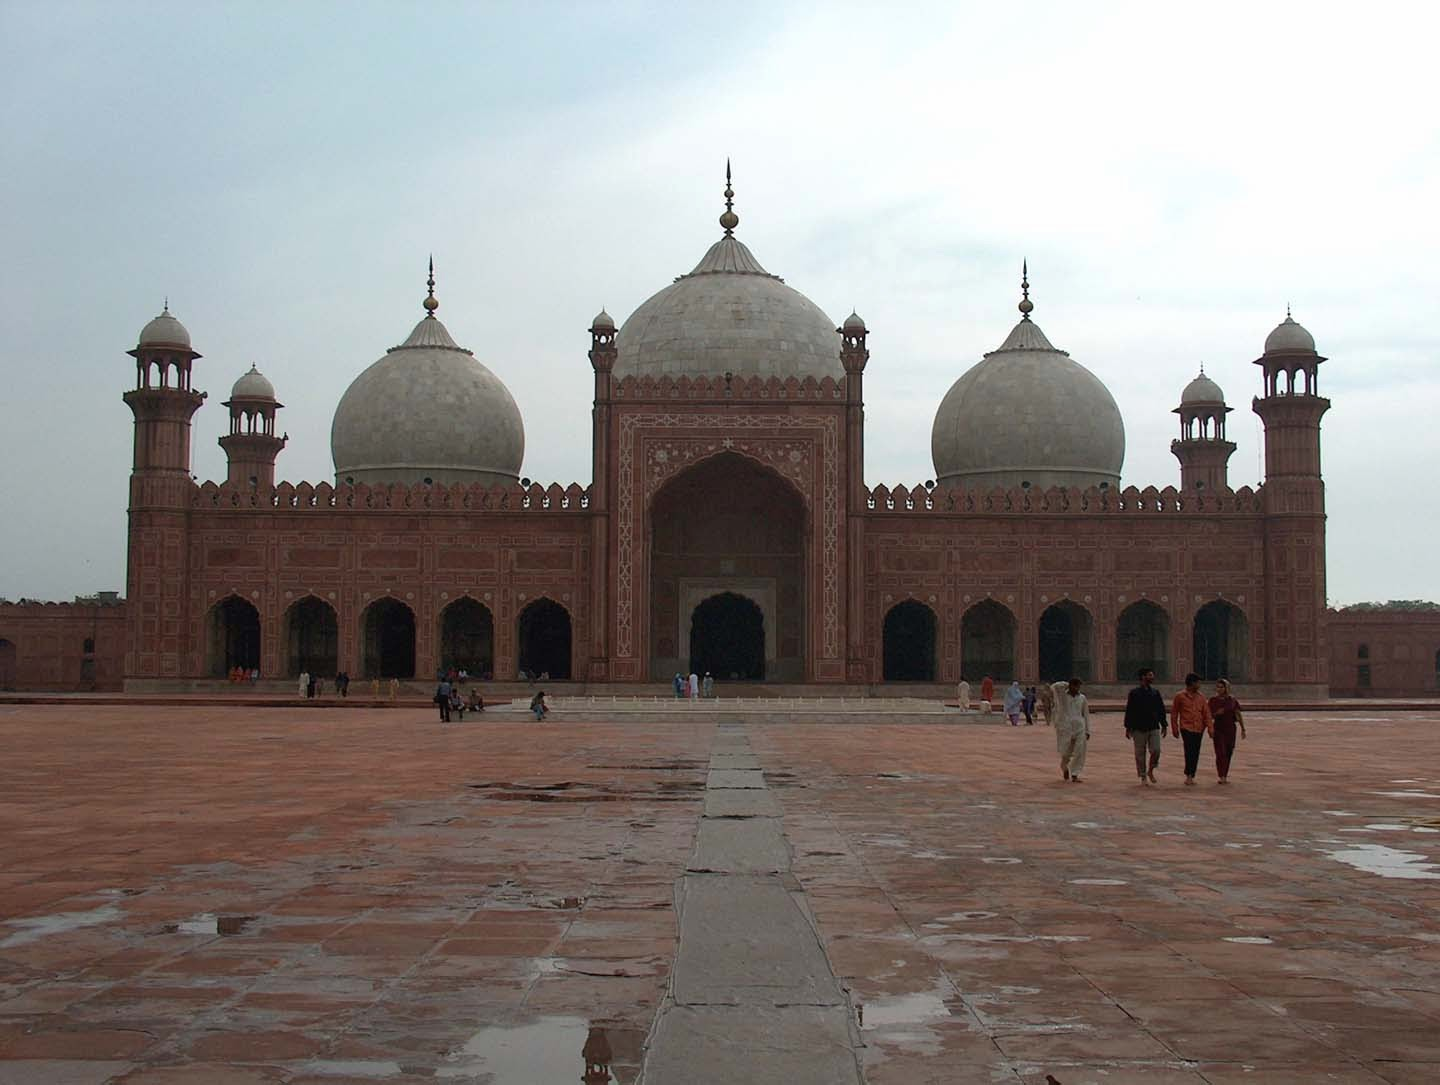 badshahi mosque The badshahi mosque is the fifth largest mosque in the world it was built by order of mughal emperor aurangzeb and was completed in 1673, making it one of the oldest mosques as well.